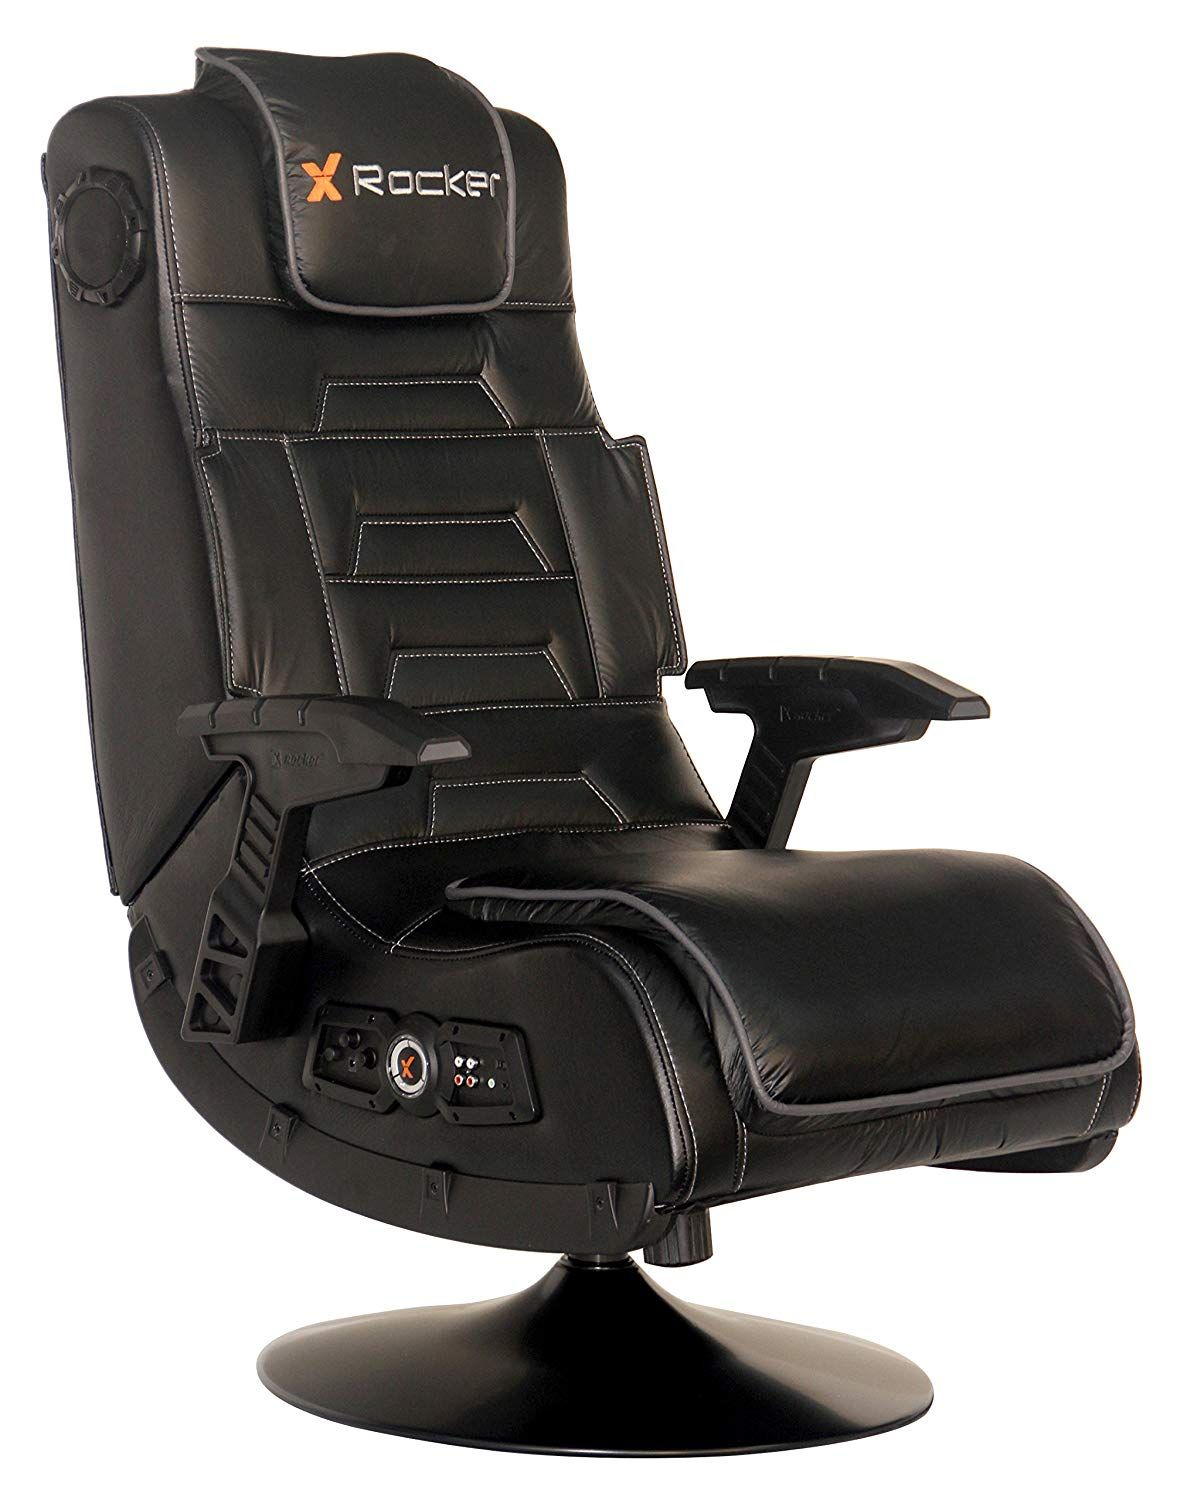 Top 10 Best Video Game Chairs In 2020 Reviews Gaming Chair